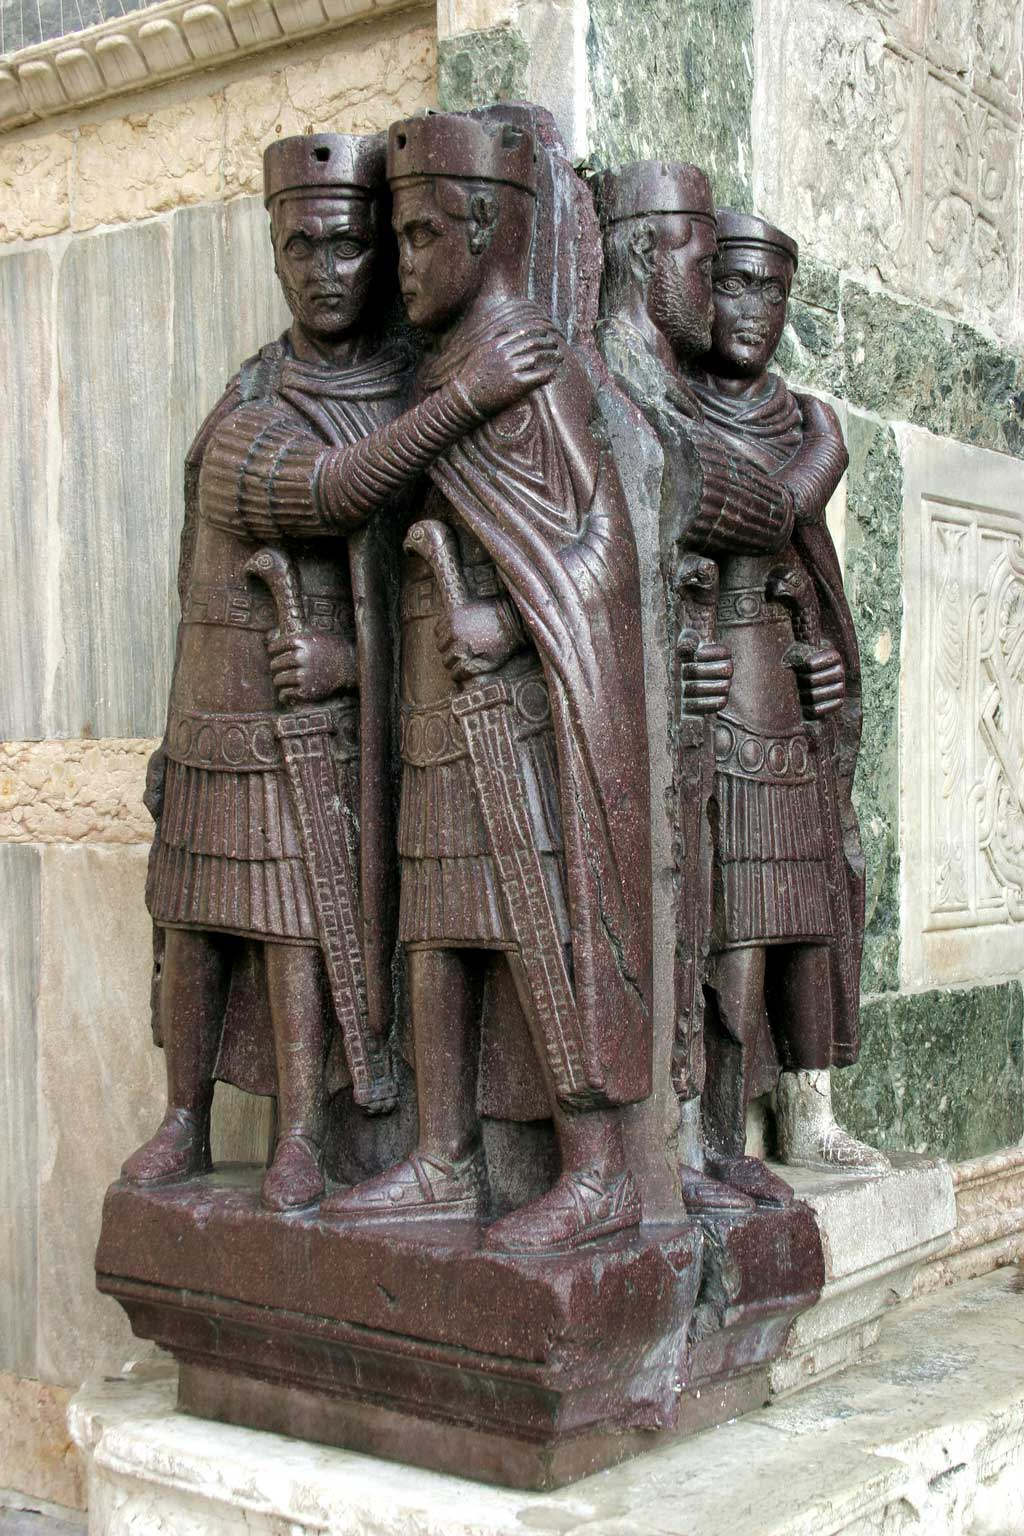 This is a photo of the Portrait of the Tetrarchs. The Portrait of the Tetrarchs is originally from Constantinople, but since the Middle Ages it has been fixed to a corner of the facade of St Mark's Basilica in Venice, Italy.